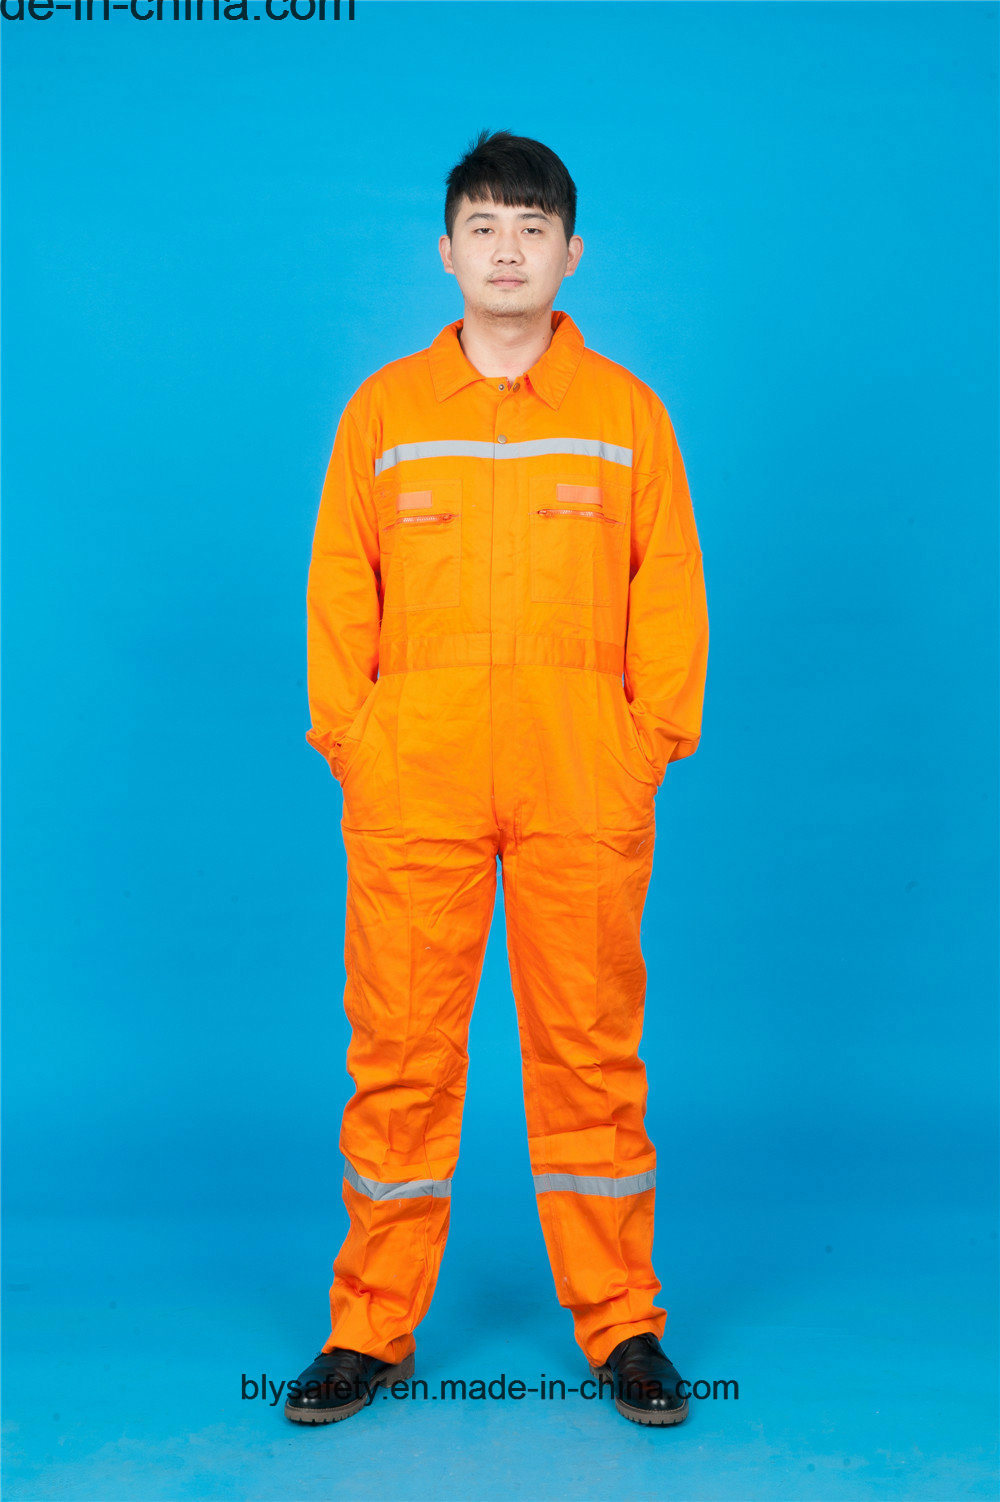 65% Polyester 35%Cotton Long Sleeve Safety with Reflective Coverall (BLY1017)